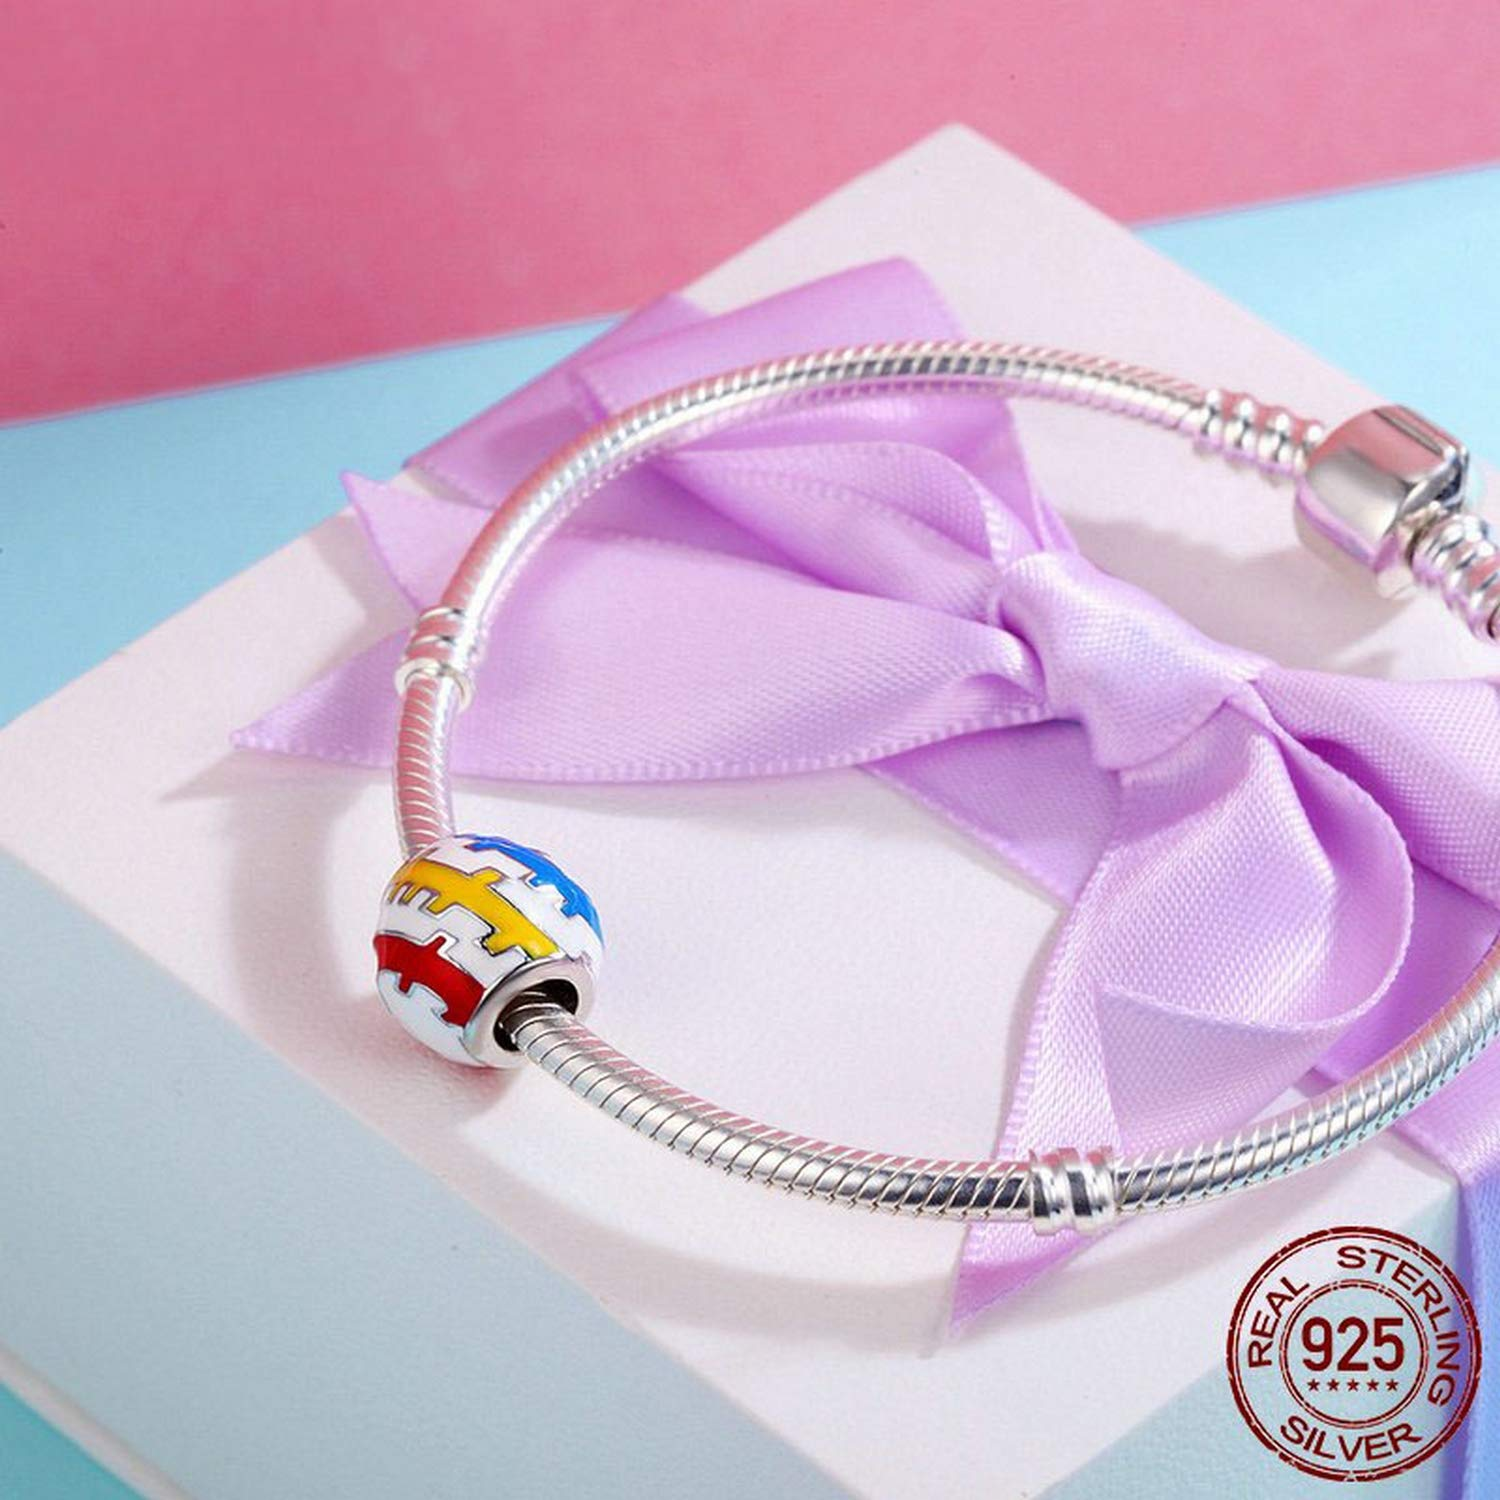 EverReena Trendy Beautiful Youth Colorful Exquisite Silver Beads Bracelets